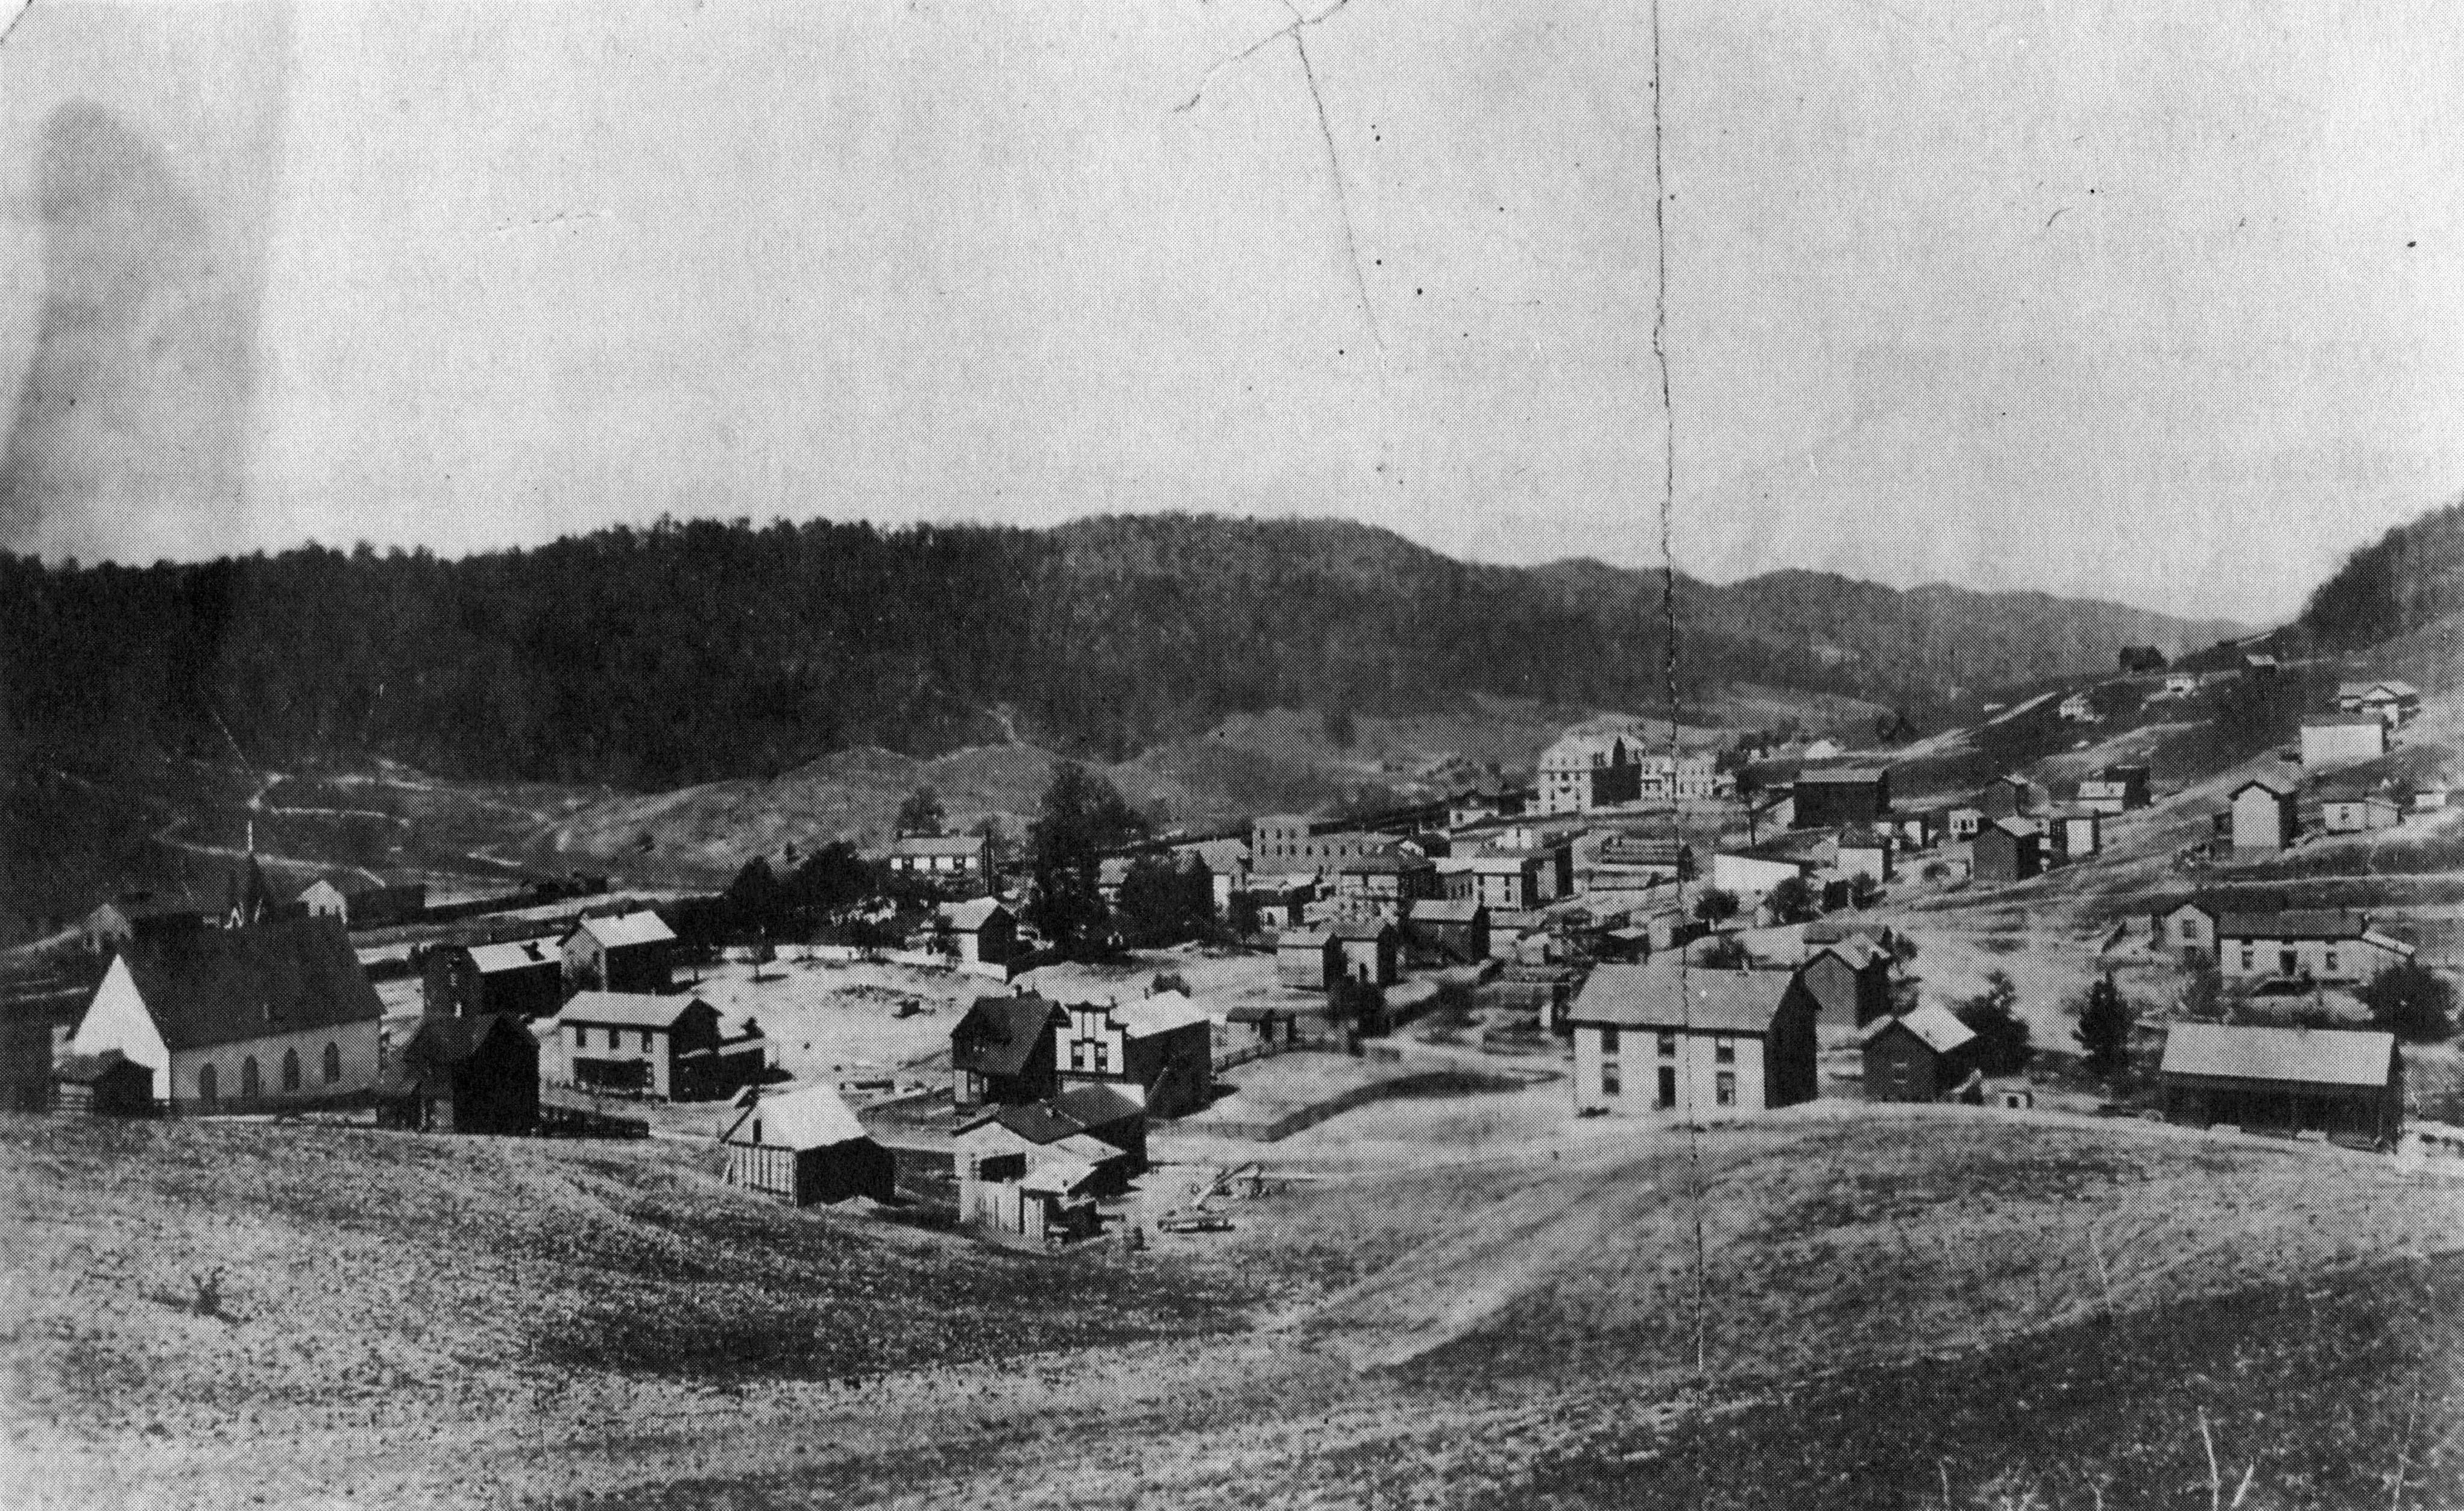 Bluefield, West Virginia is late 1890s